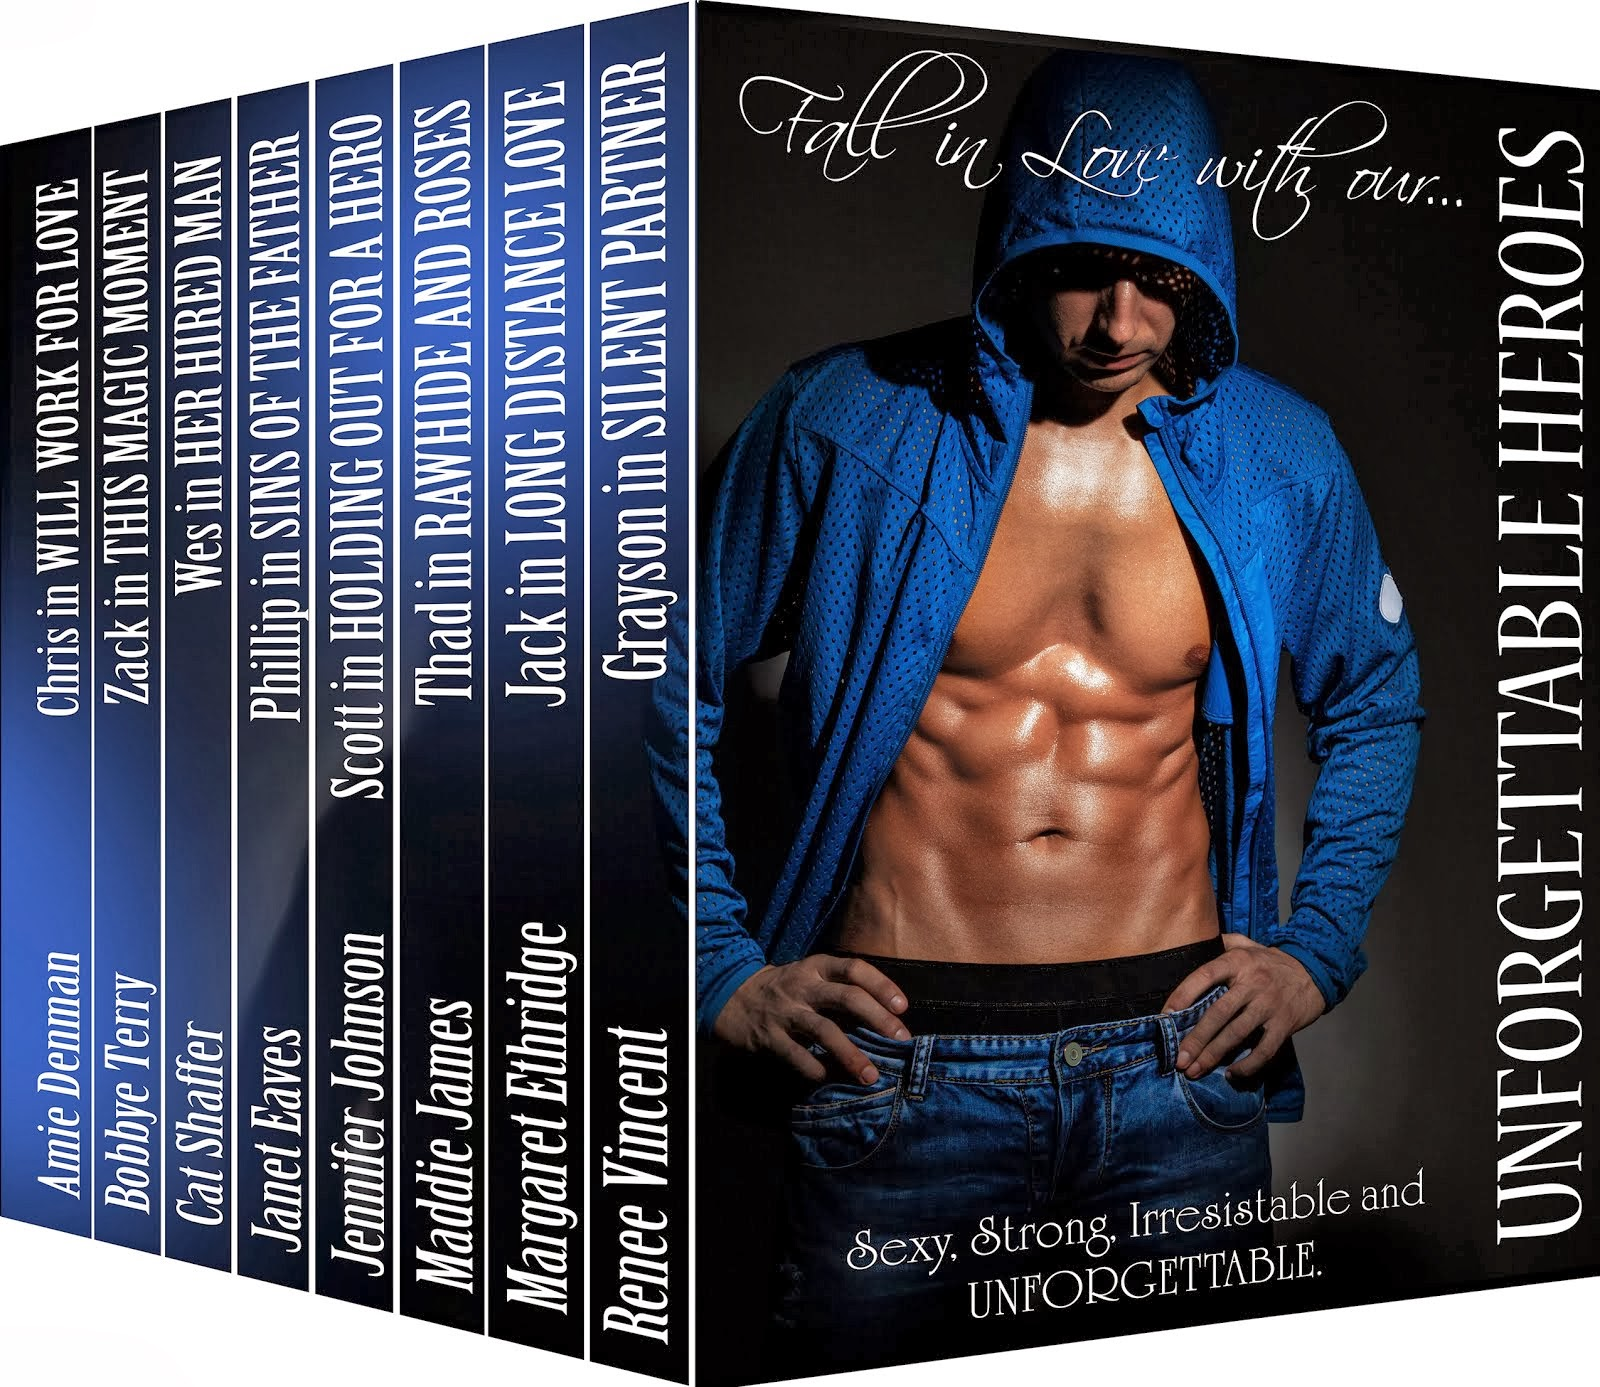 Boxed Set Feature